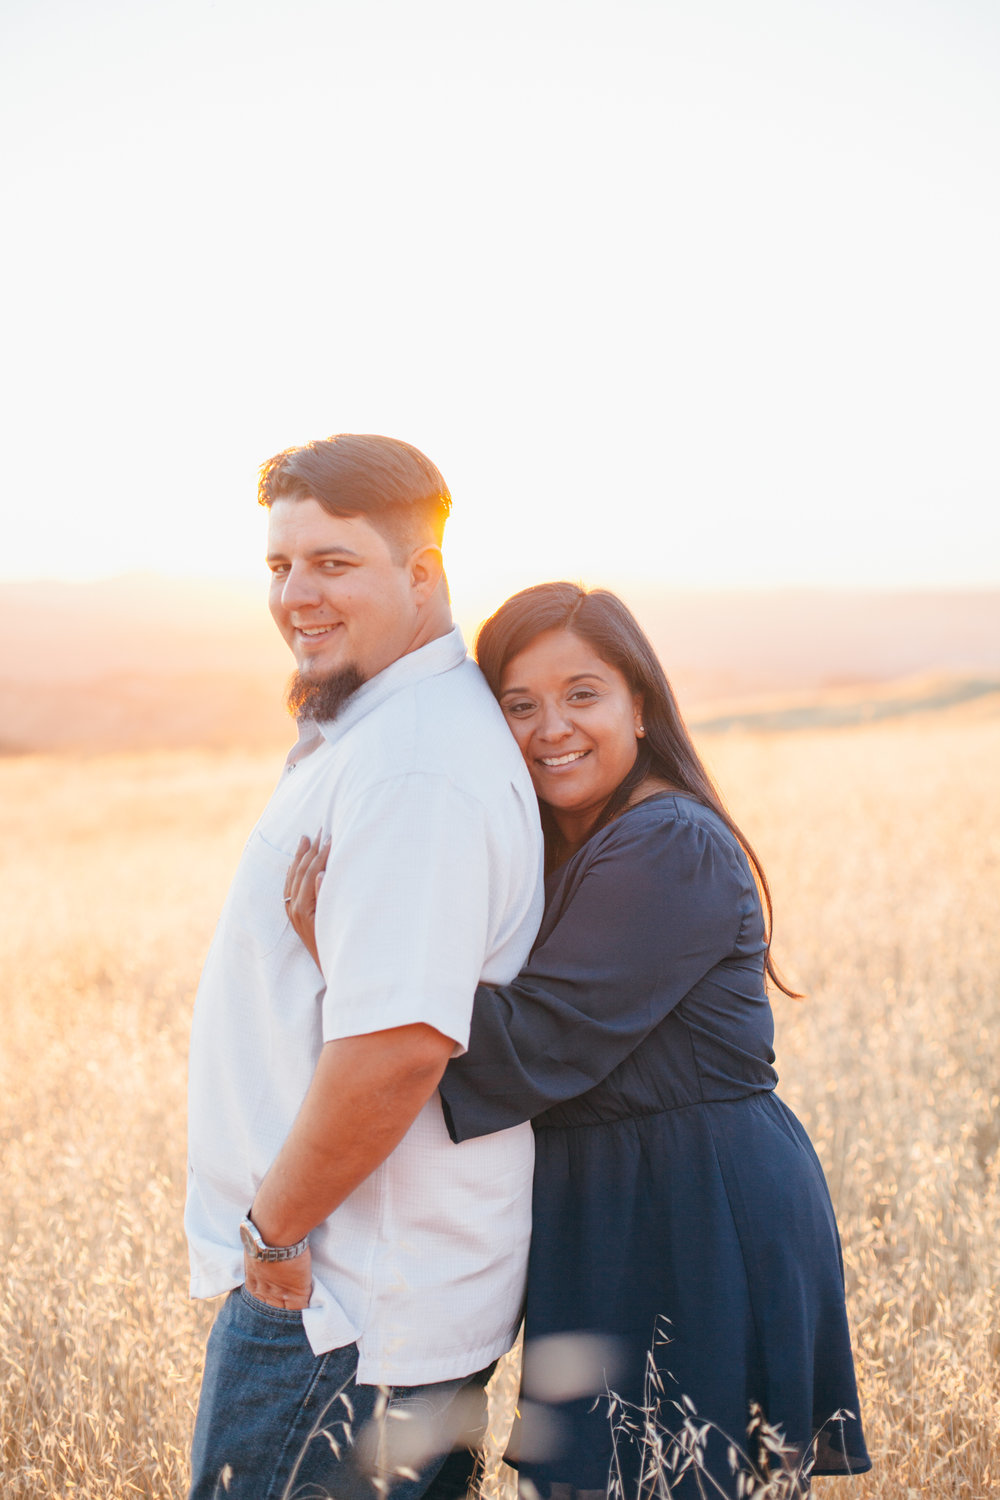 chris-diana-outdoor-engagement-session-in-walnut-creek-california-21